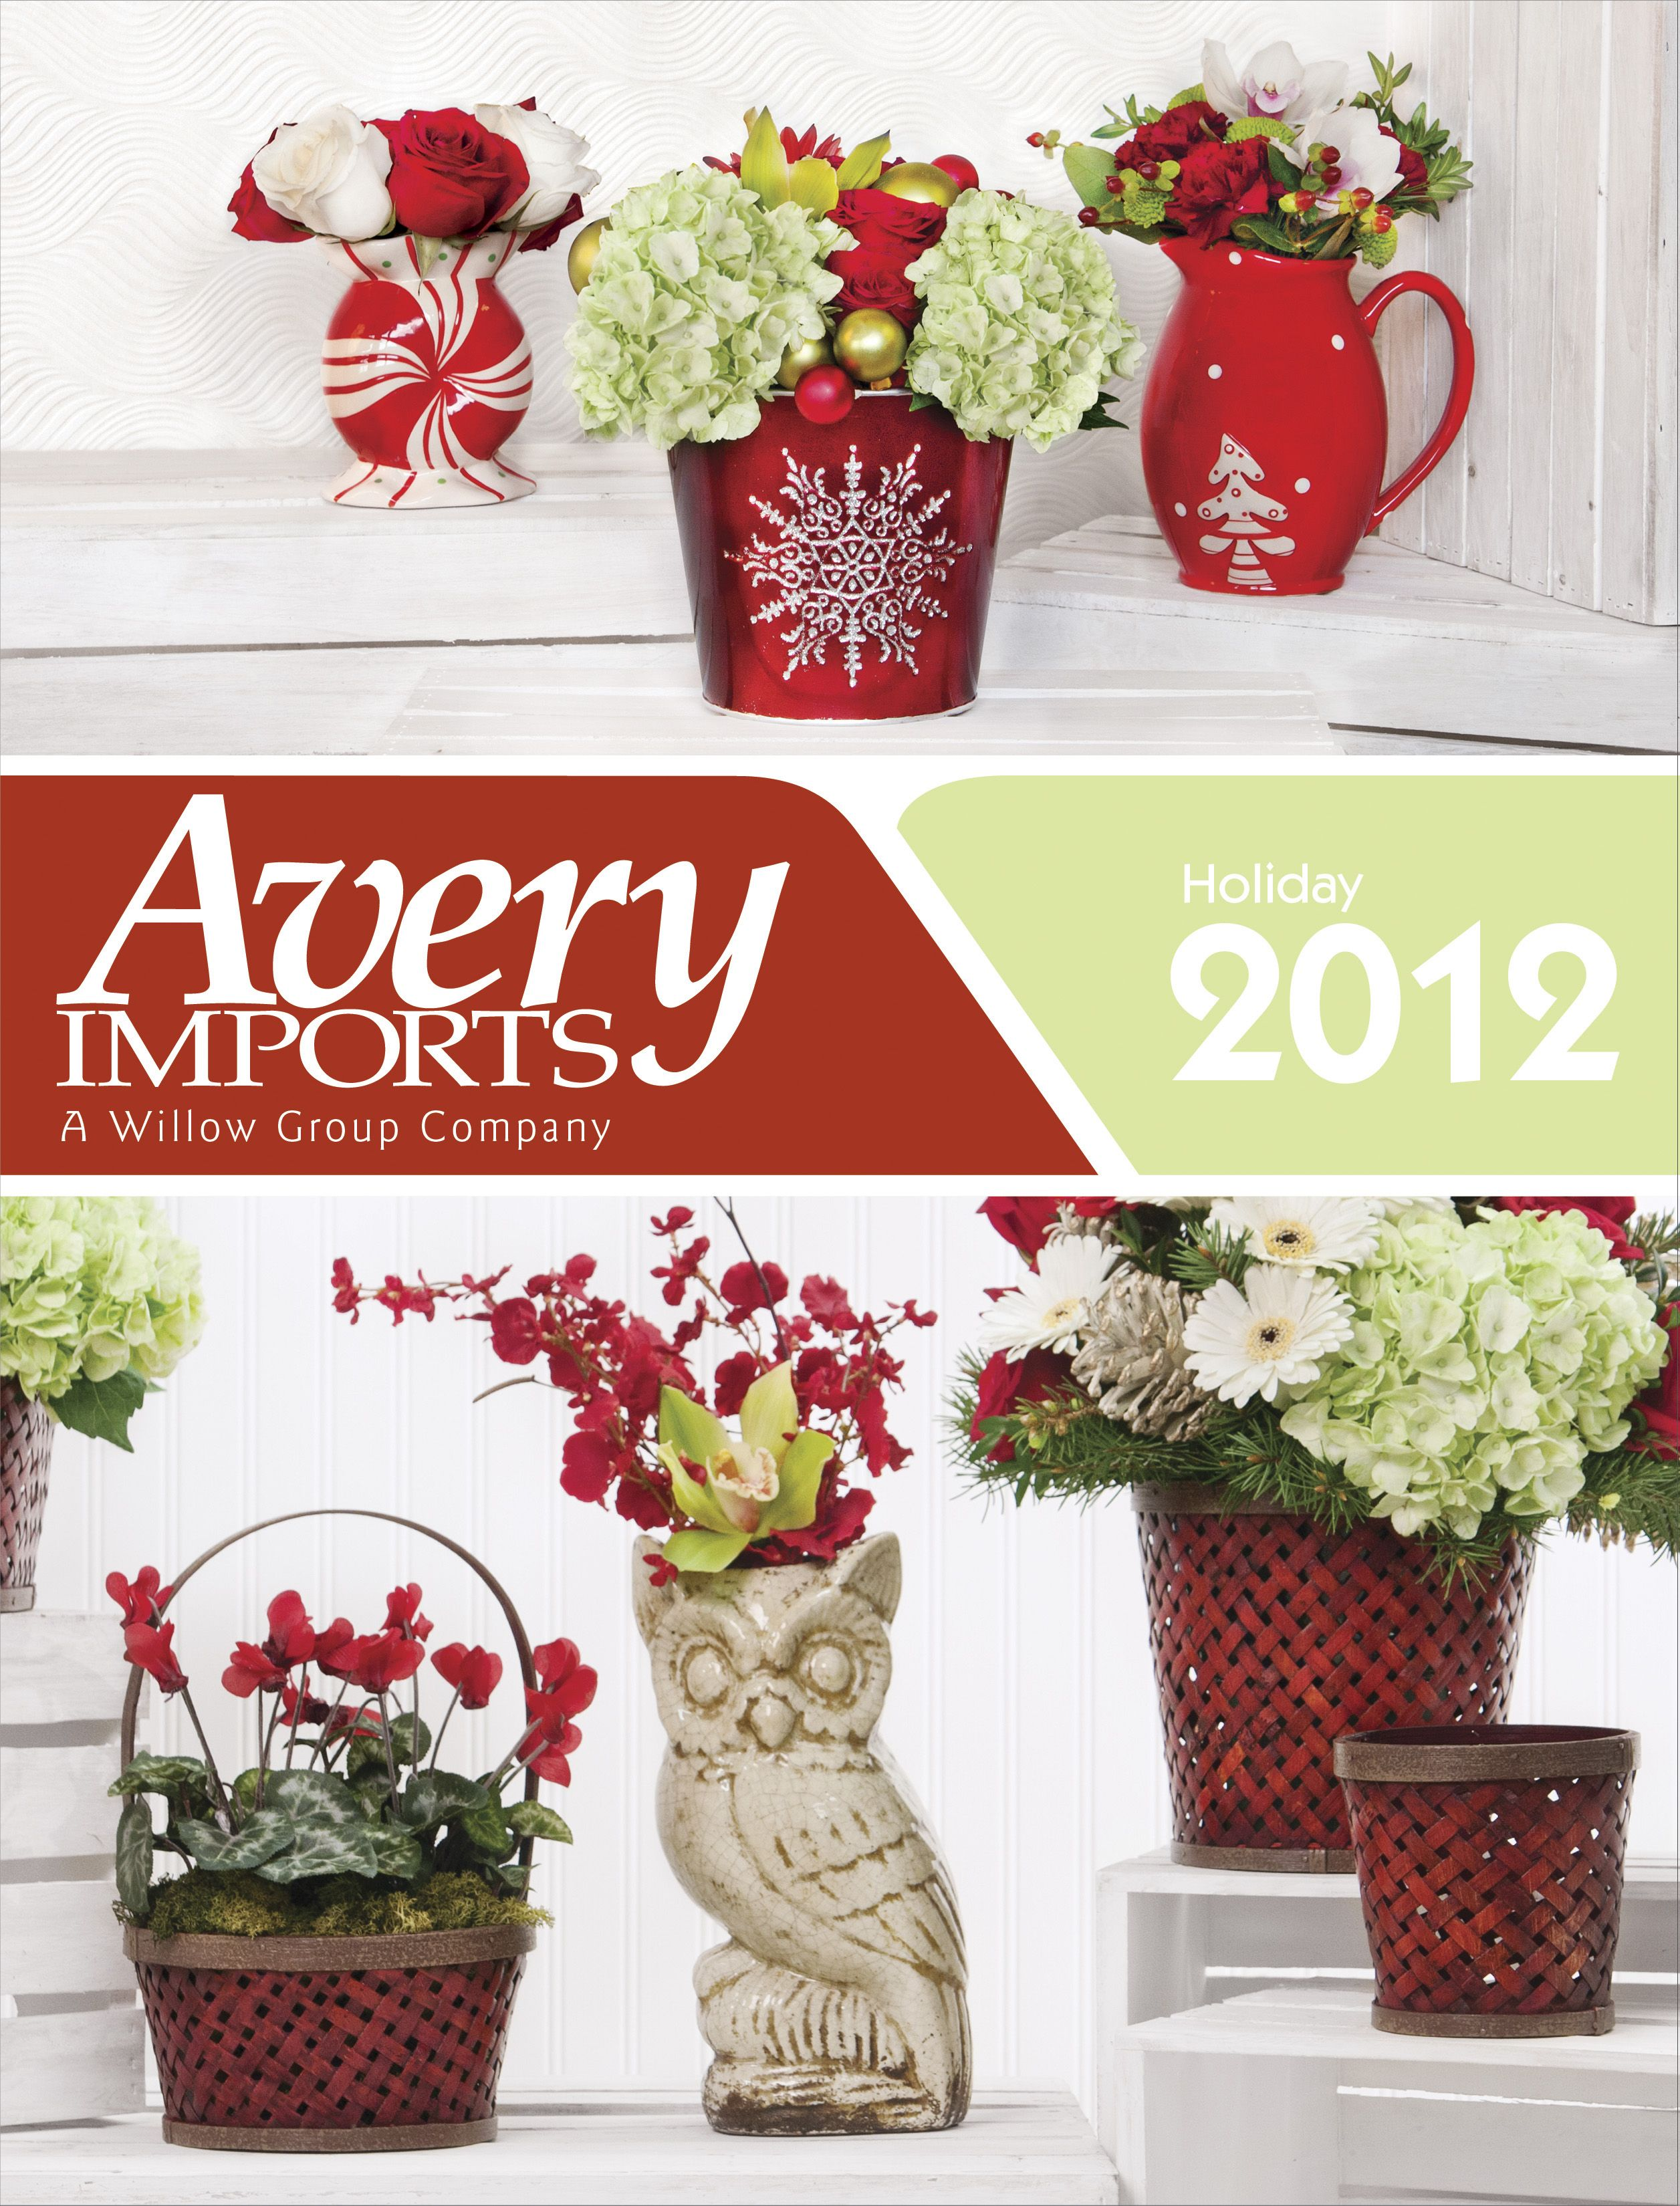 Get into the holiday season with Avery Imports Wholesale